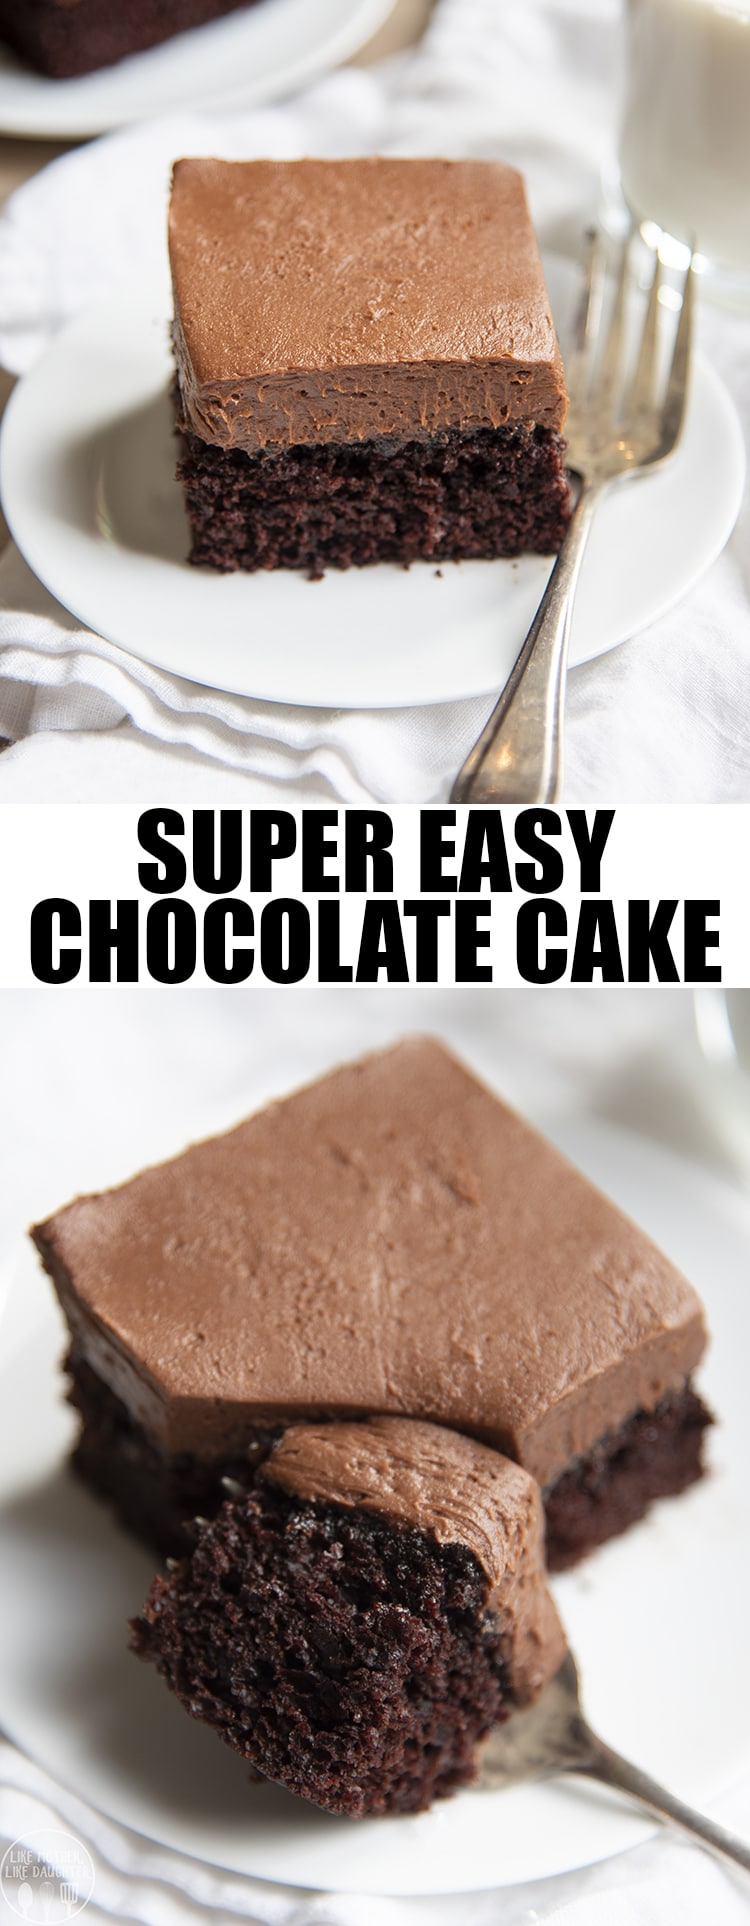 This easy chocolate cake is the best chocolate cake ever, it's fudgy, moist, and so delicious. It's topped with a creamy and rich chocolate buttercream and is the perfect cake for chocolate lovers! Made in a 9x13 pan, it's the easiest cake there is! #easyrecipes #dessertrecipes #chocolatecake #cake #chocolate